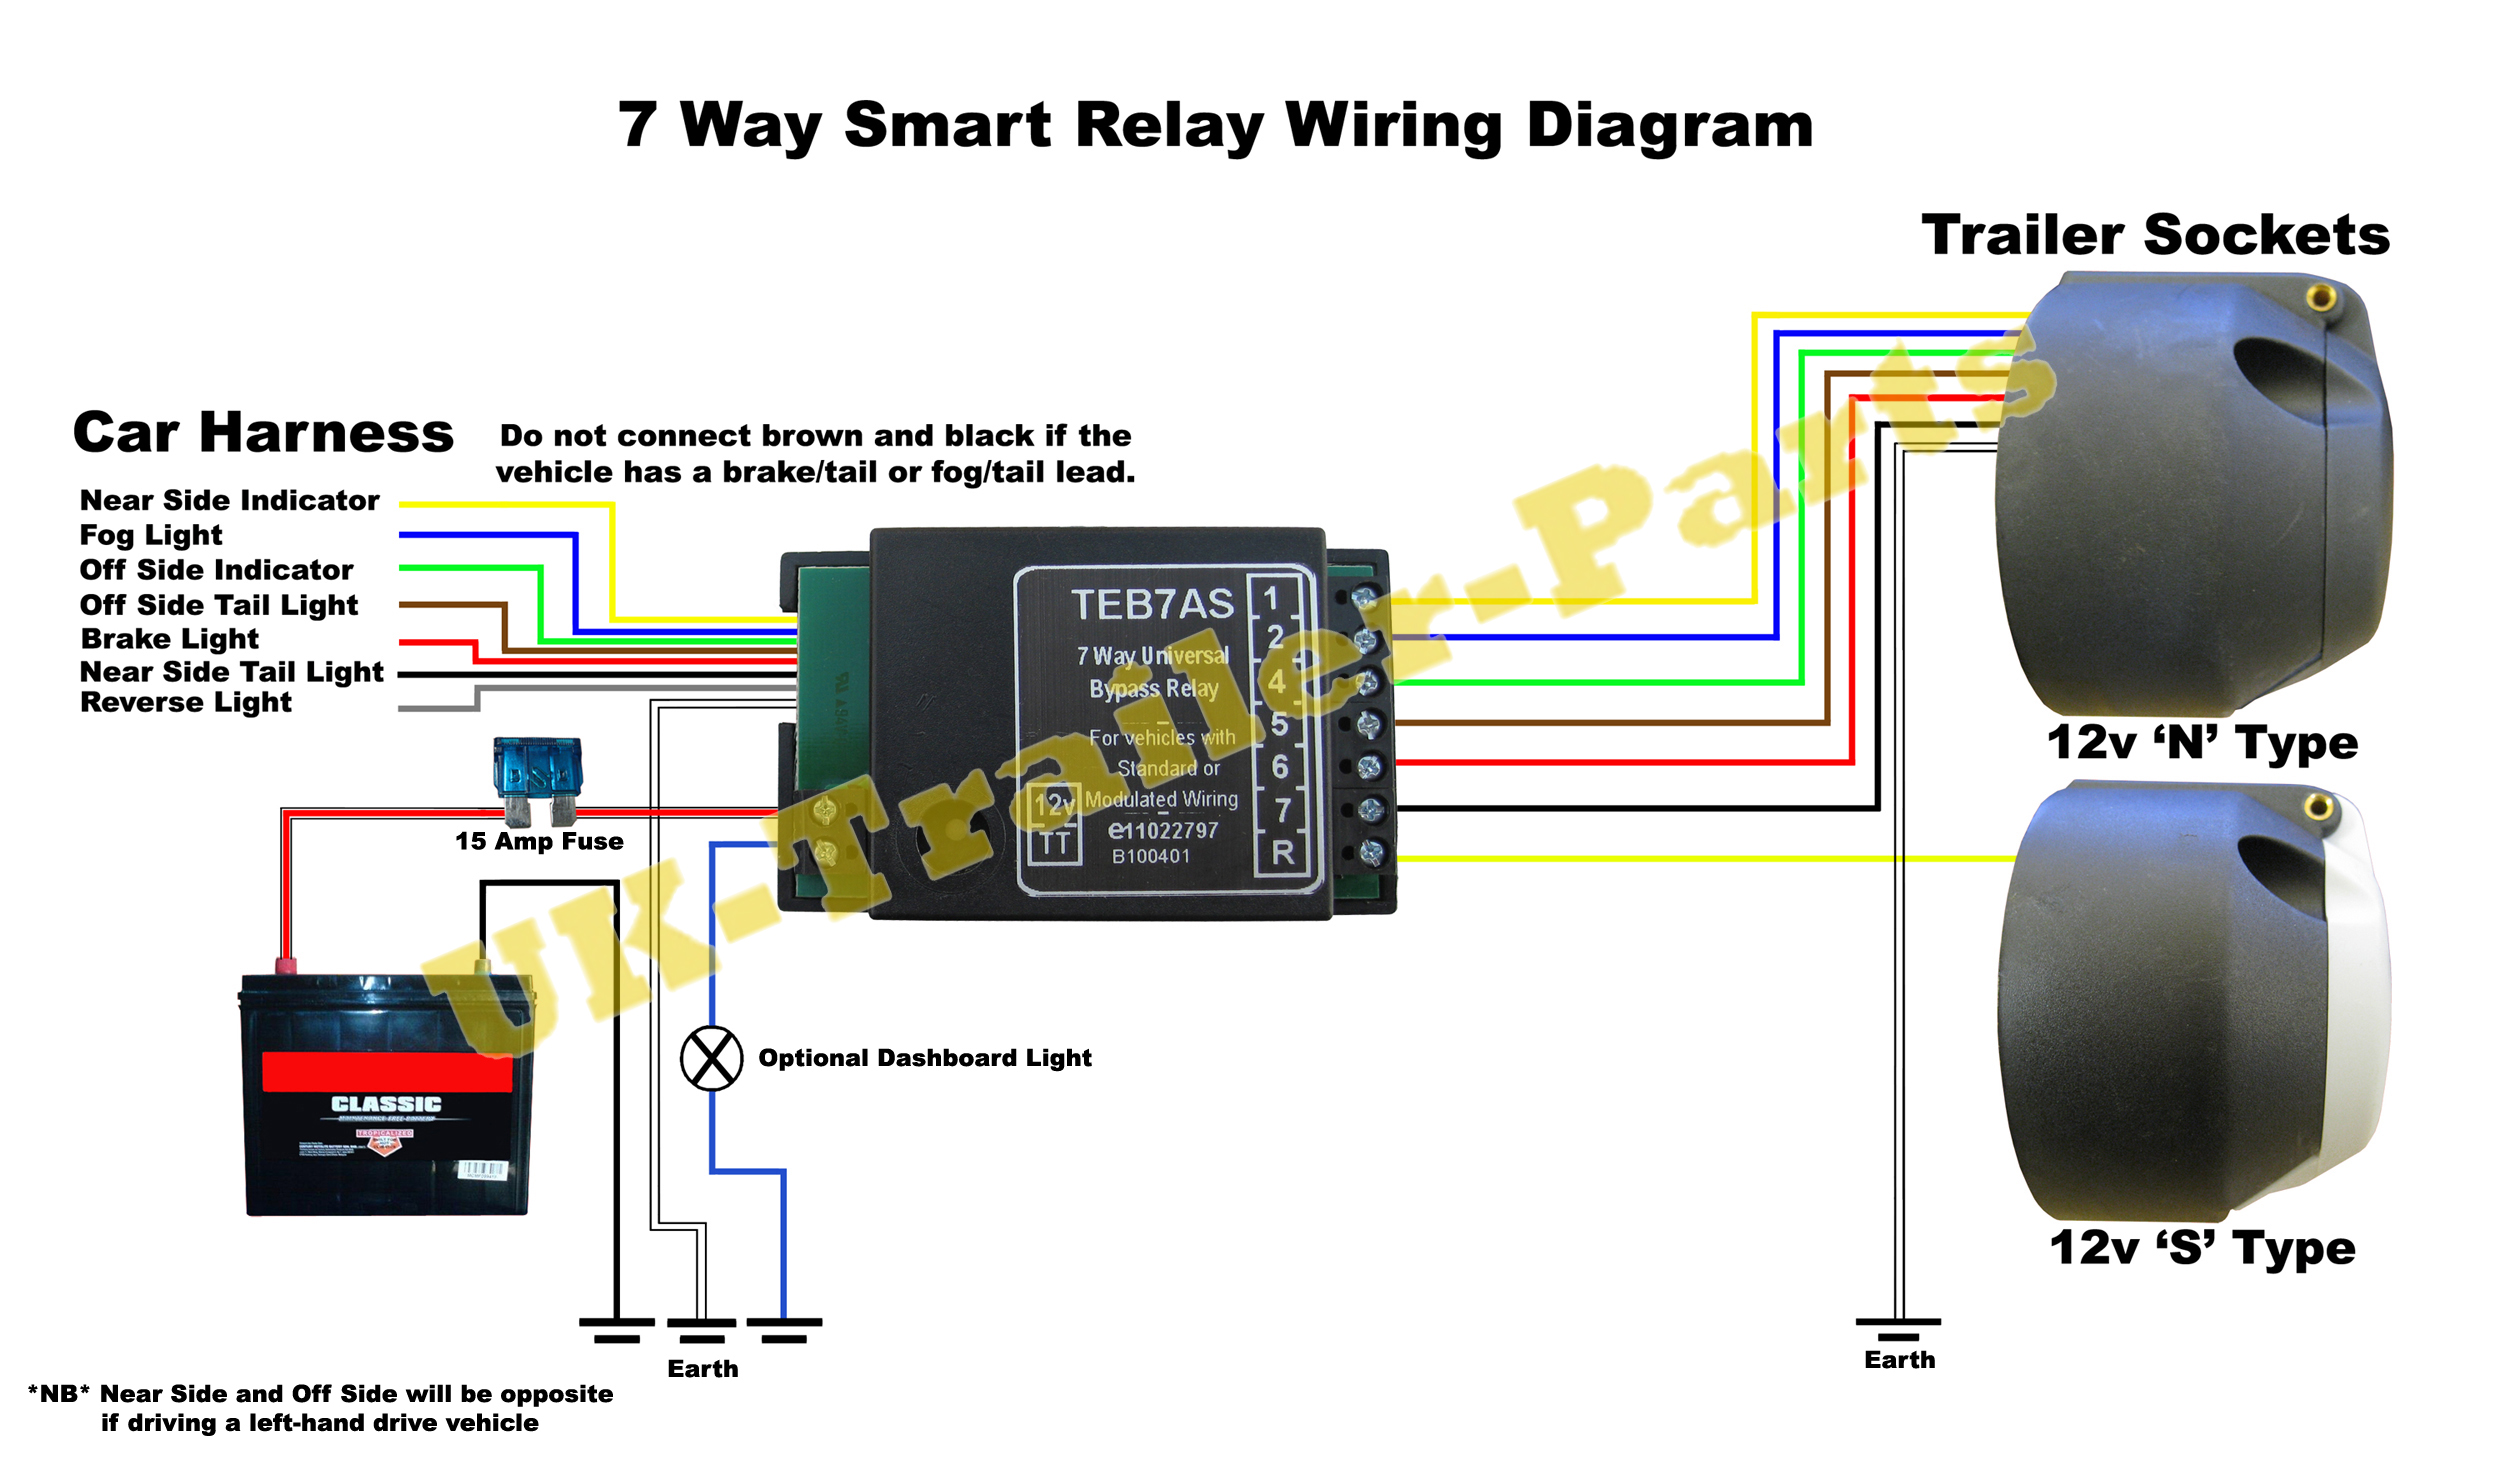 7way trailer wiring diagram audio for 2004 silverado 7 way universal bypass relay | uk-trailer-parts